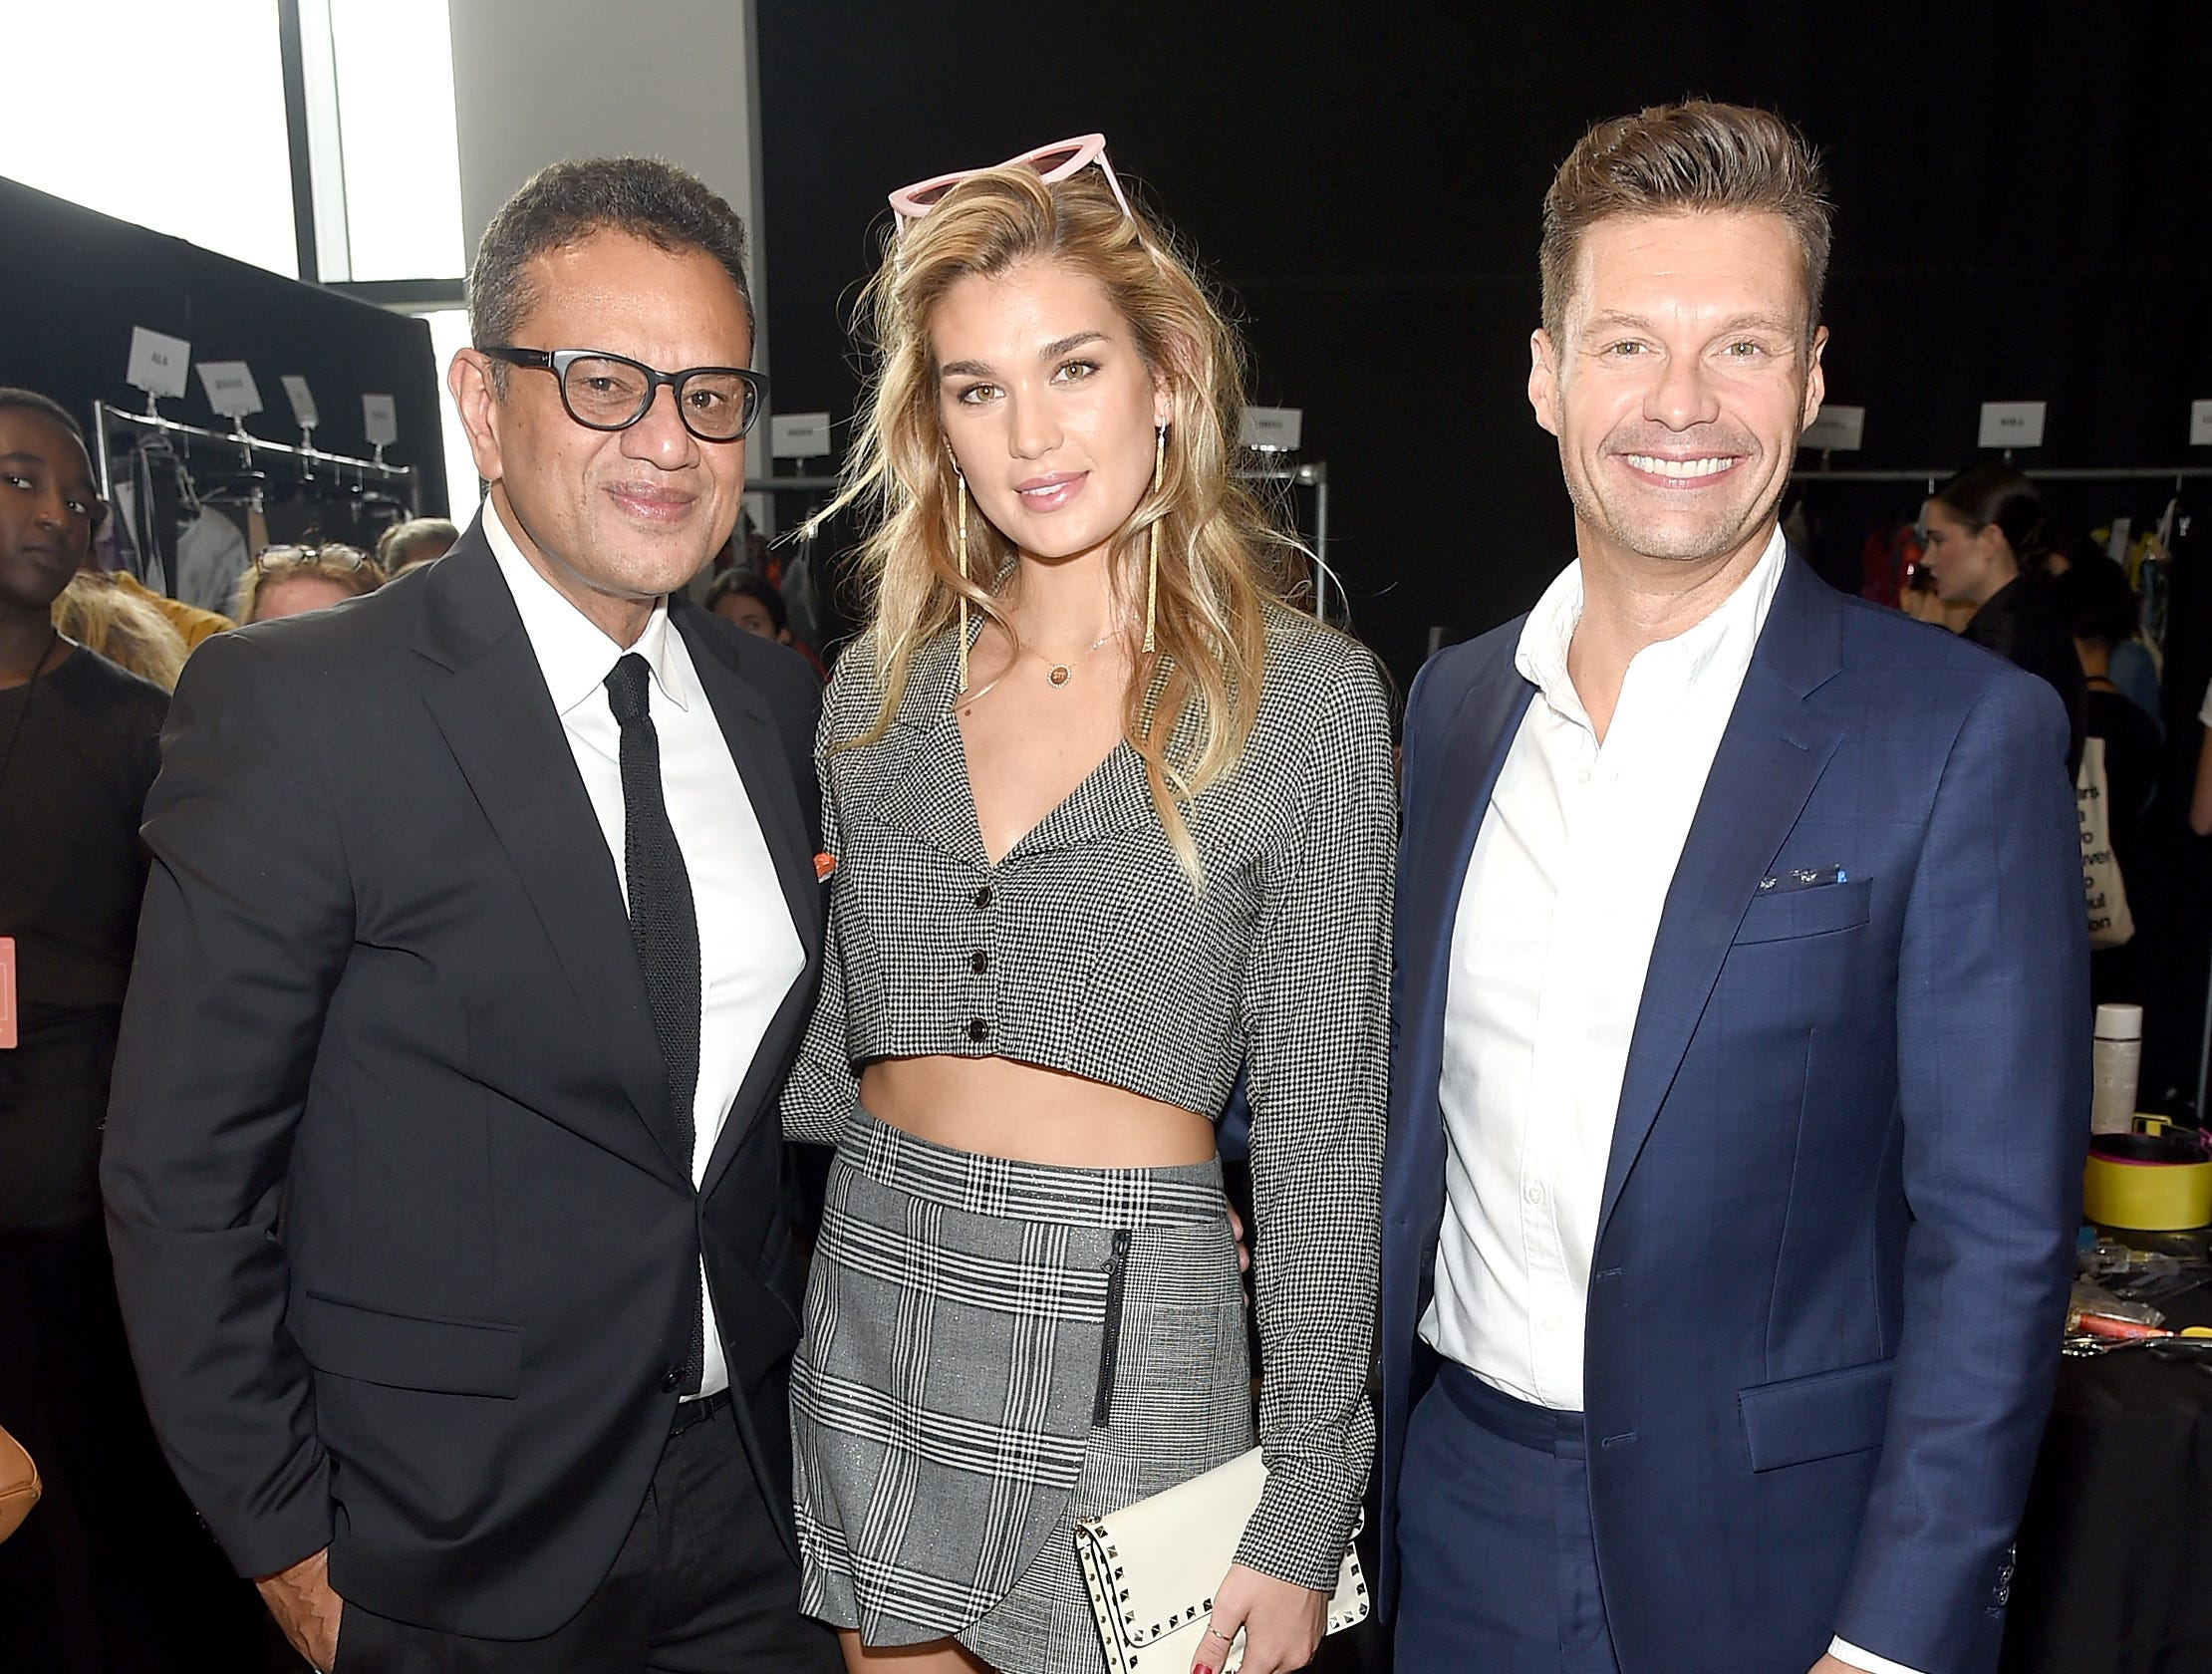 NEW YORK, NY - SEPTEMBER 11:  Designer Naeem Khan, model Shayna Taylor and Ryan Seacrest pose backstage for Naeem Khan during New York Fashion Week: The Shows at Gallery I at Spring Studios on September 11, 2018 in New York City.  (Photo by Jamie McCarthy/Getty Images for NYFW: The Shows) ORG XMIT: 775216898 ORIG FILE ID: 1031609848